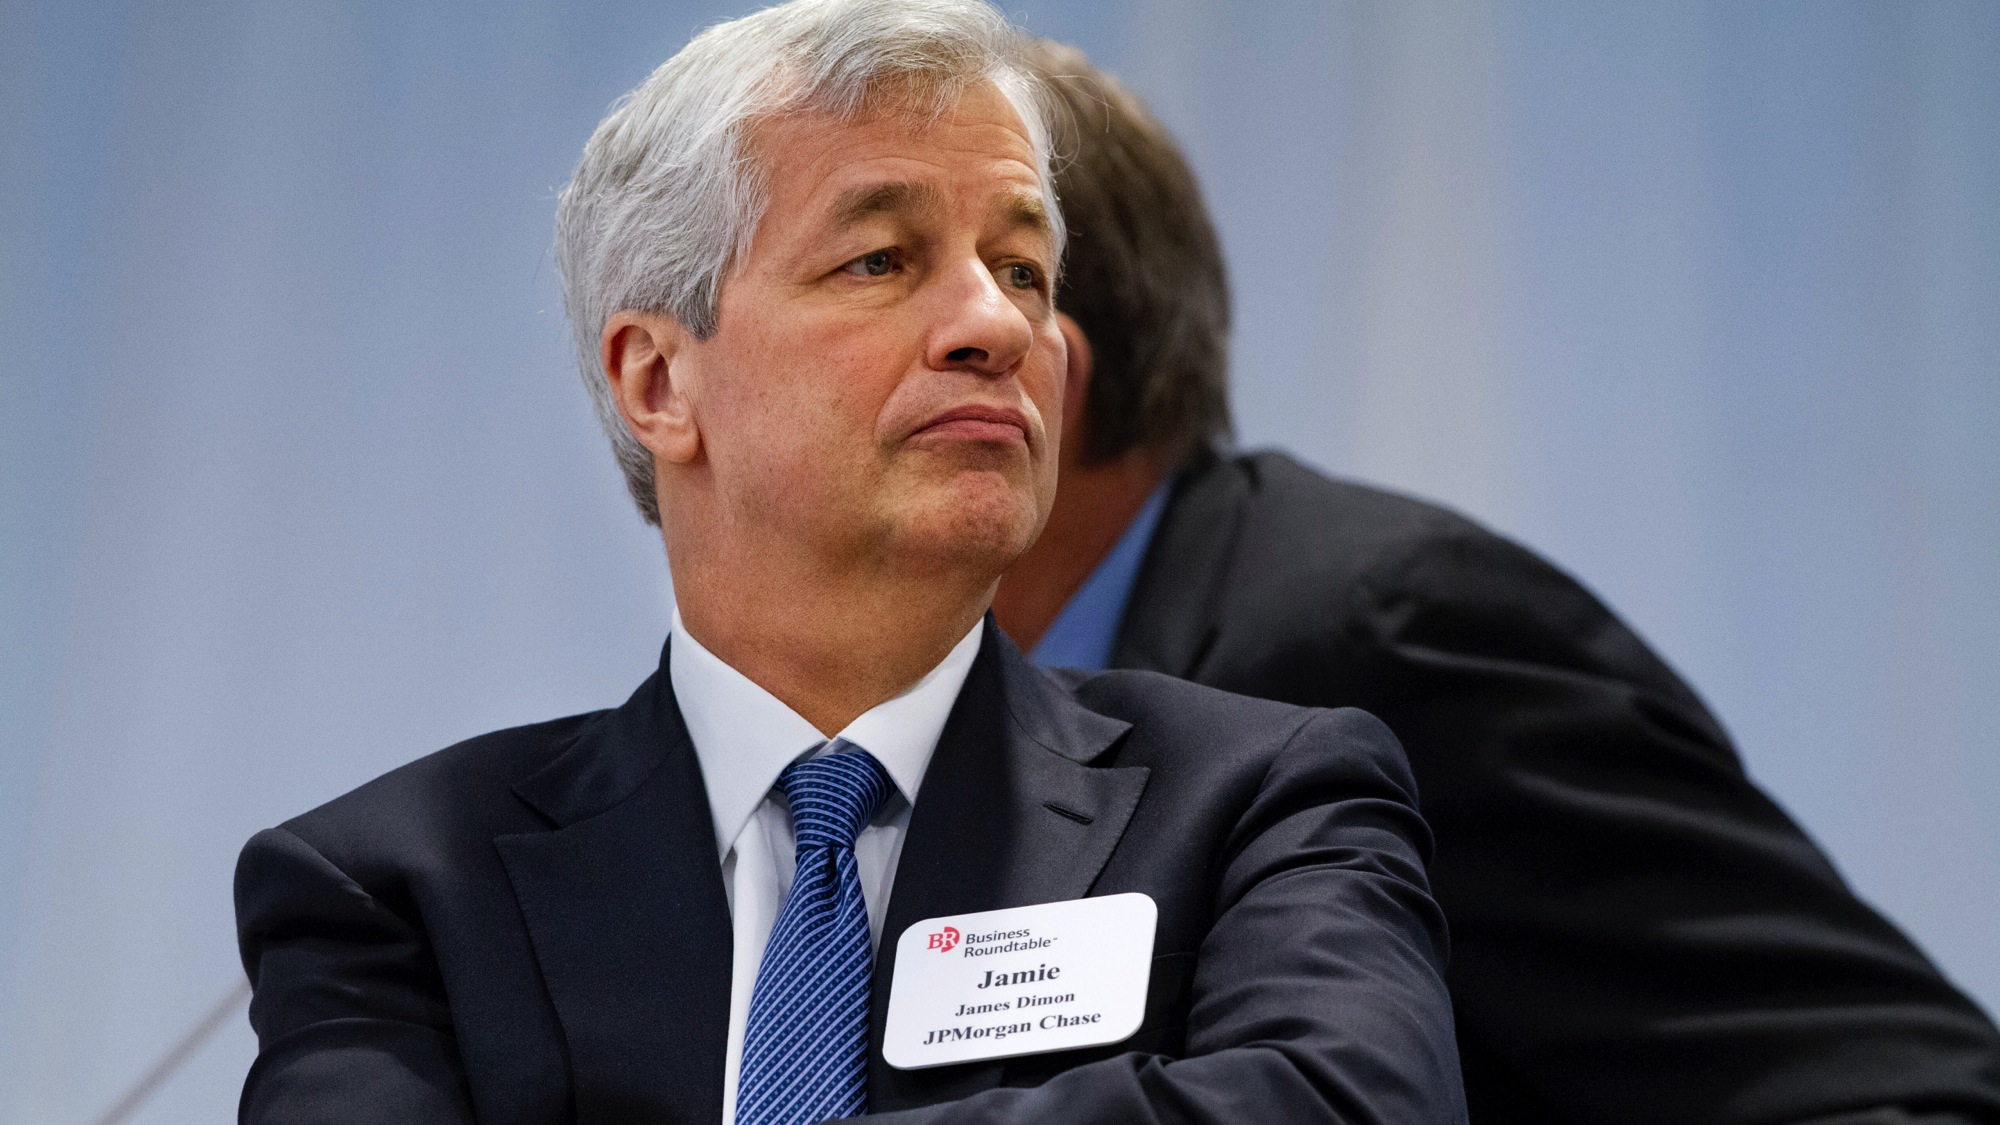 JPMorgan Chase Chairman and CEO Jamie Dimon listens as President Barack Obama speaks to leading CEOs to discuss ways to promote the economy and create jobs during the president's last two years in office, Wednesday, Dec. 3, 2014, at the Business Roundtable Headquarters in Washington. (AP Photo/Jacquelyn Martin)